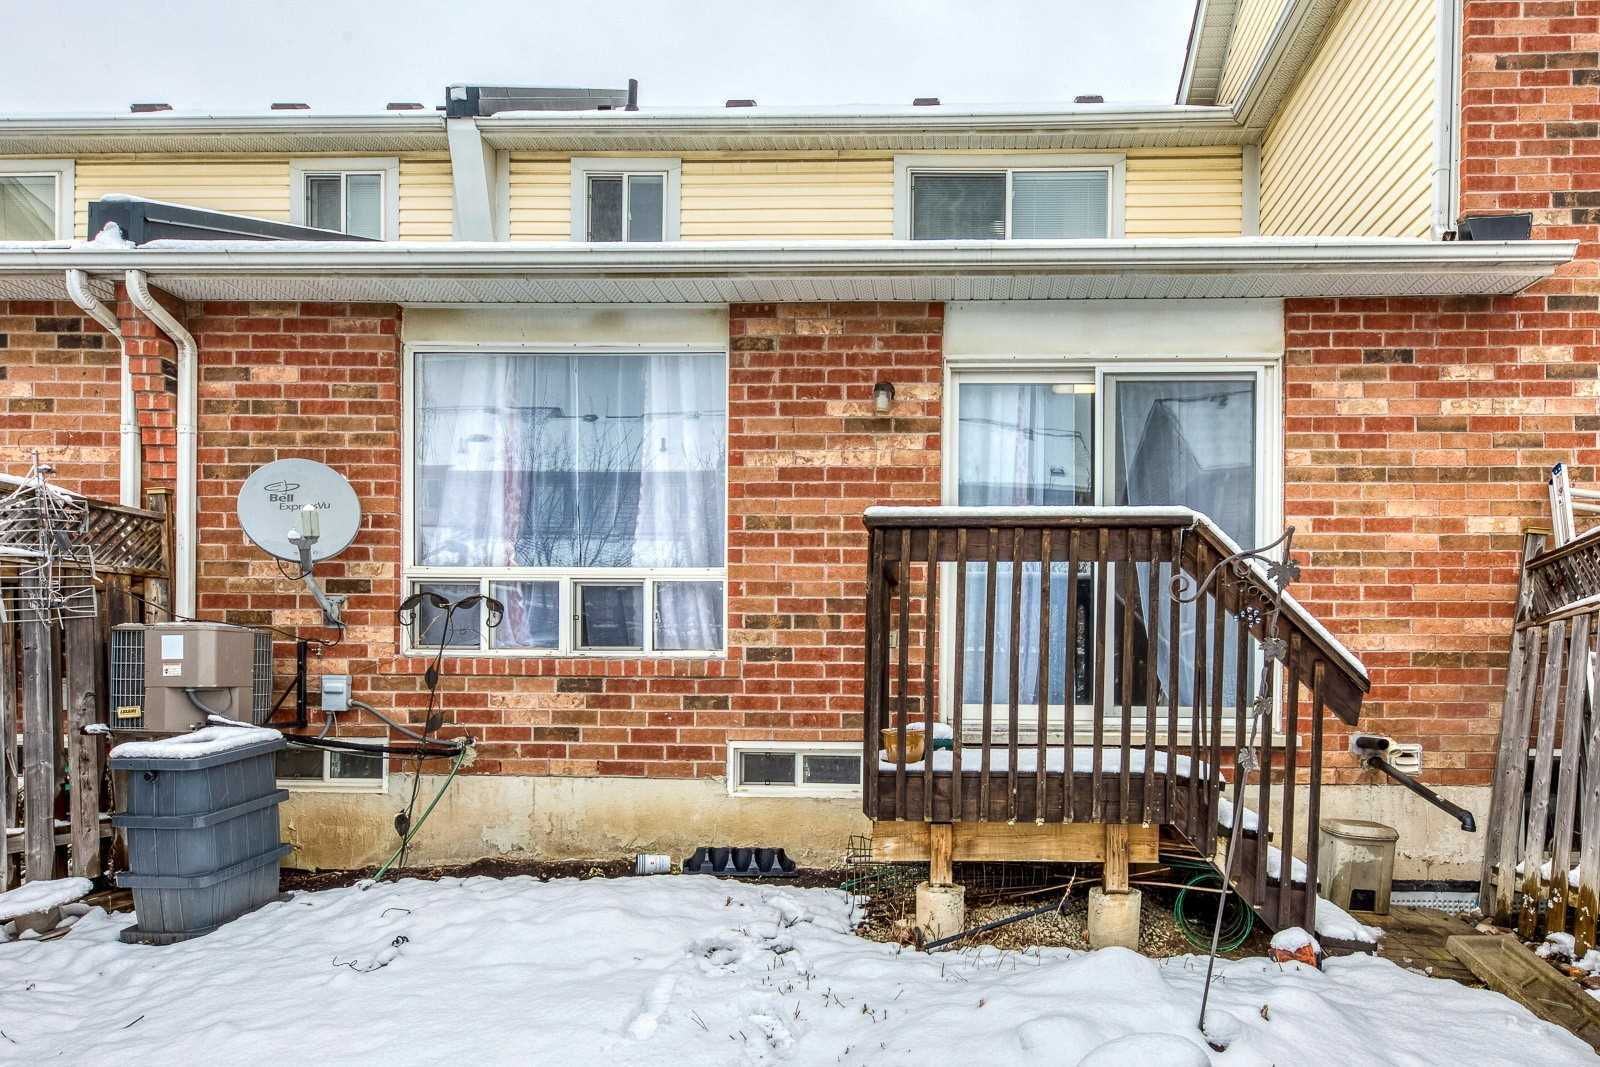 Image 13 of 20 showing inside of 3 Bedroom Att/Row/Twnhouse 2-Storey house for sale at 682 Edwards Ave, Milton L9T6B3